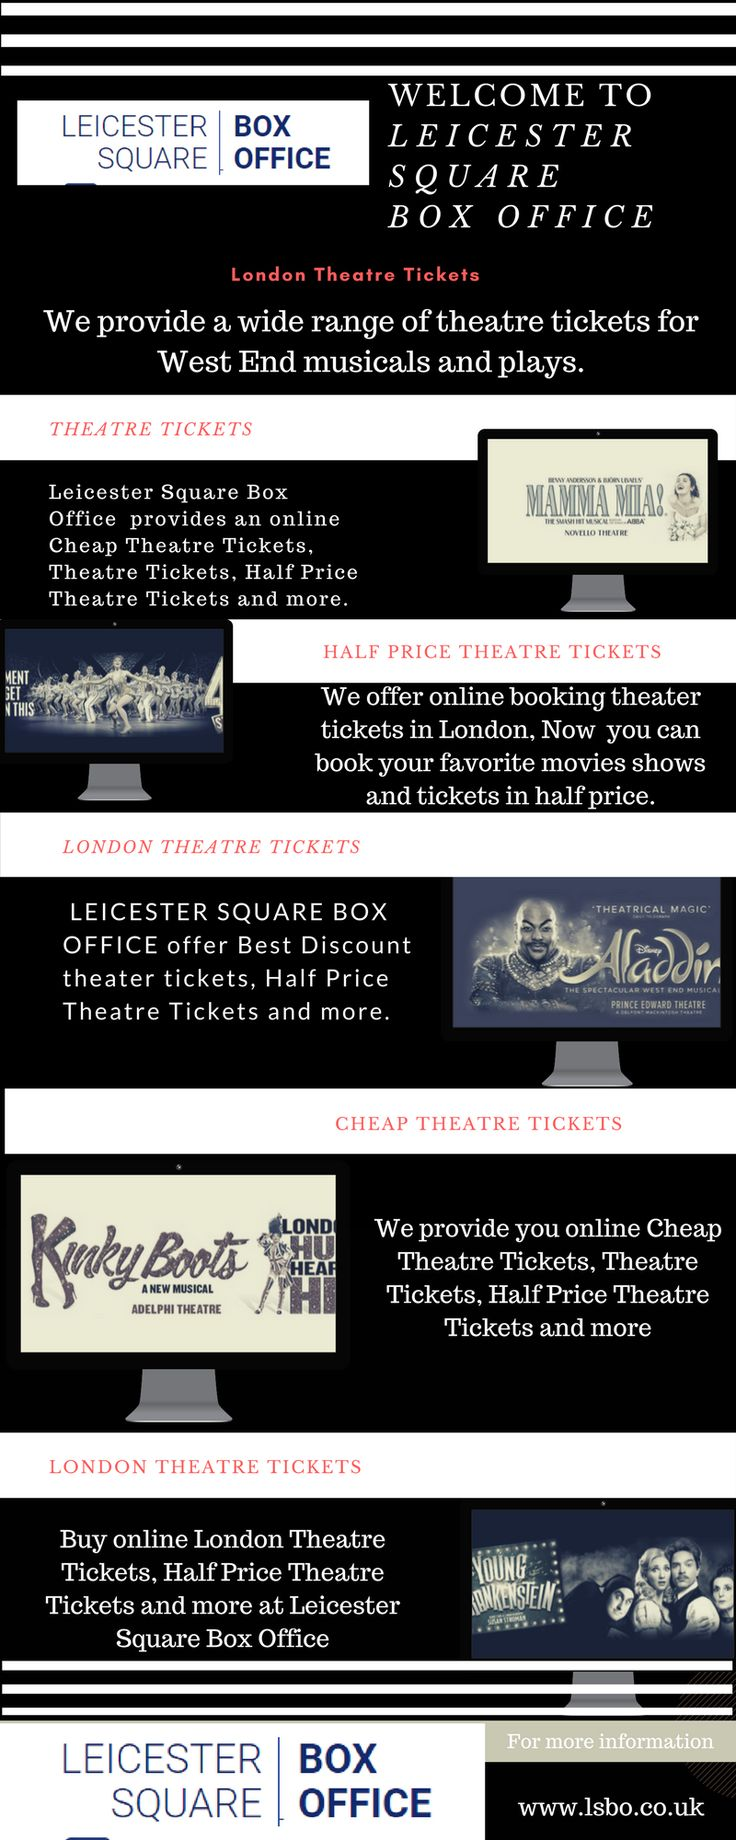 Find the Best Half Price Theatre Tickets available for selected shows, Don't Miss Out, Choose your favorite shows nearby. Book Now! Click here to get more information. https://www.lsbo.co.uk